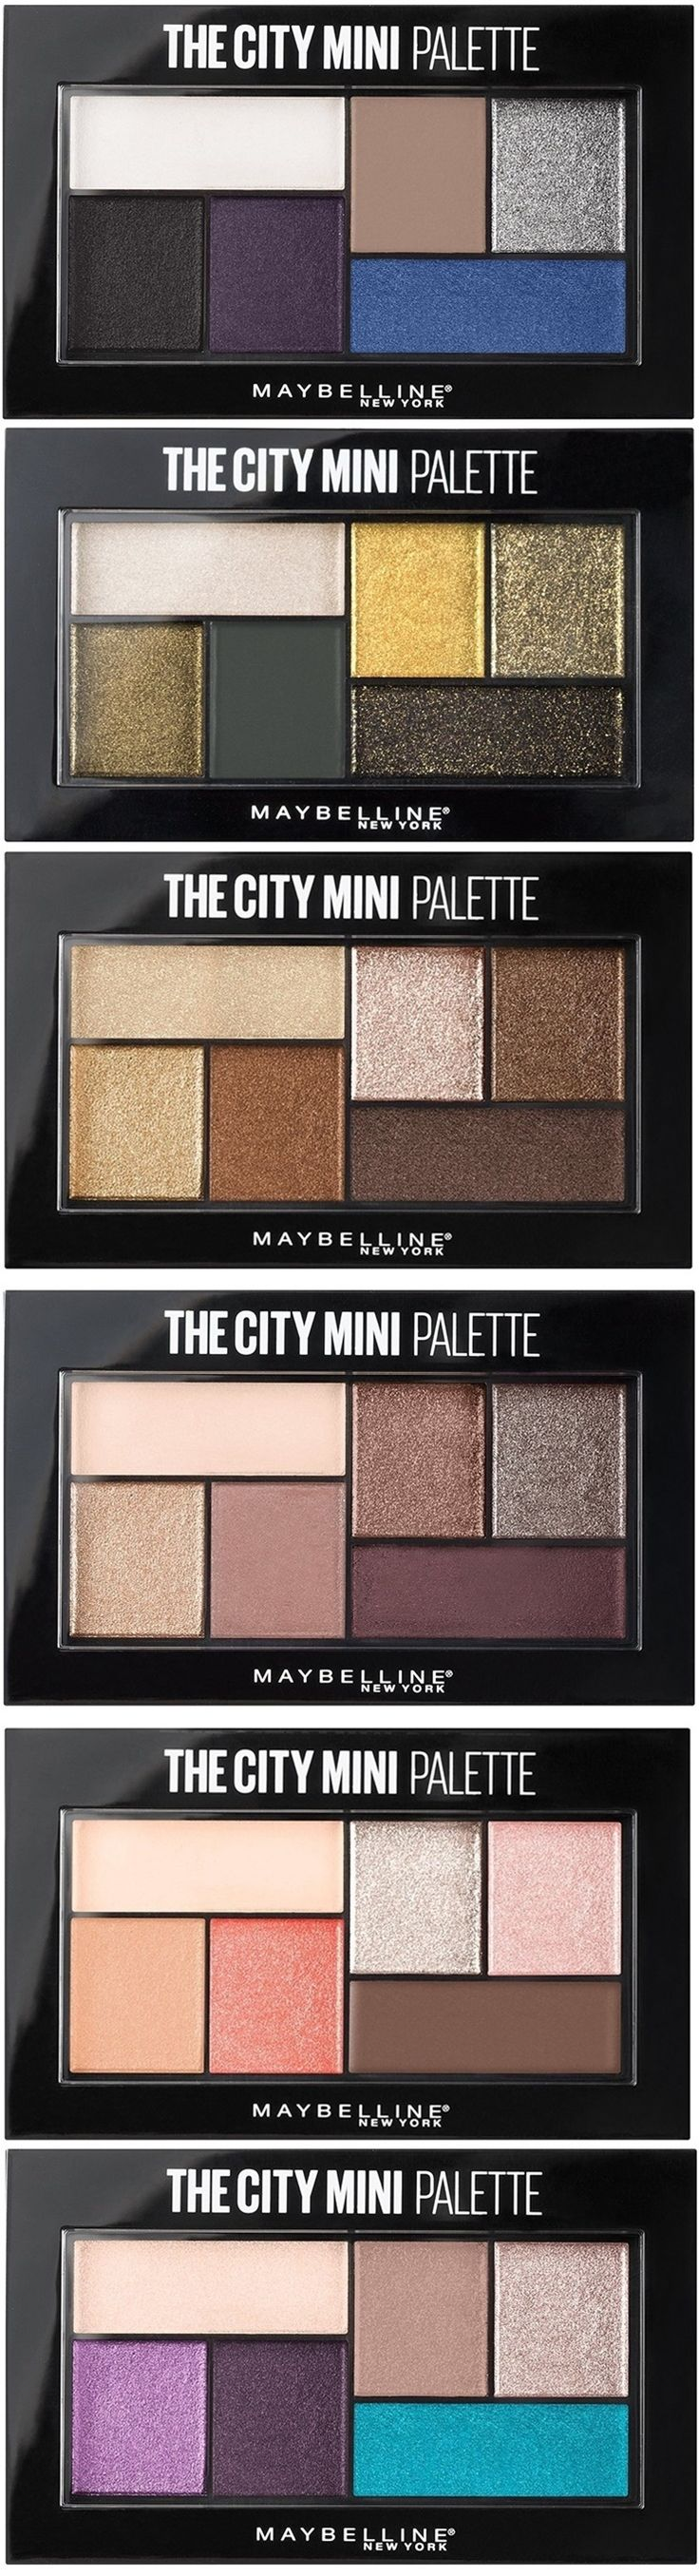 Maybelline's New $7.99 The City Mini Palette